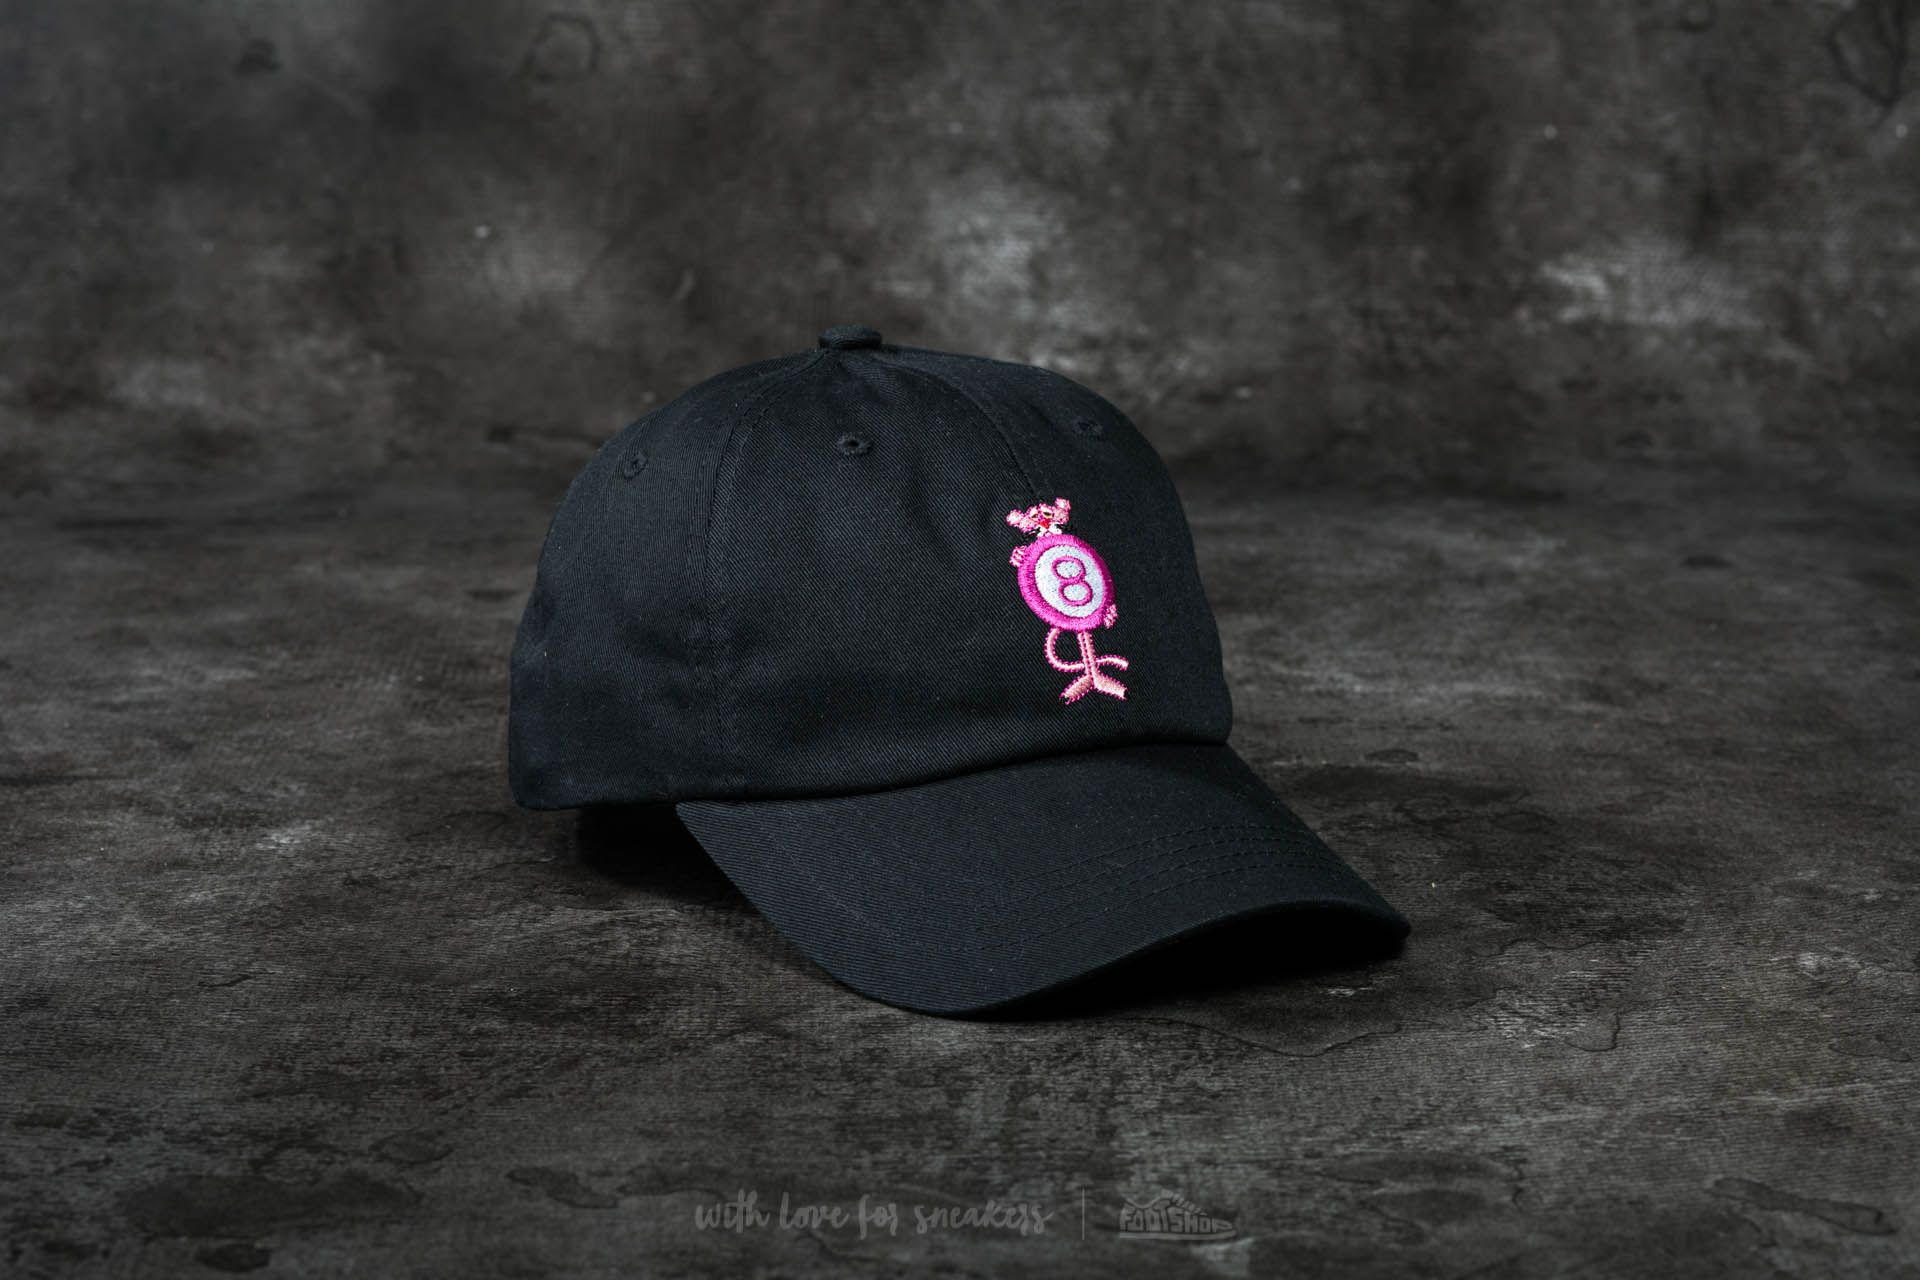 986d49d88a7 HUF x Pink Panther 8 Ball Dad Cap Black